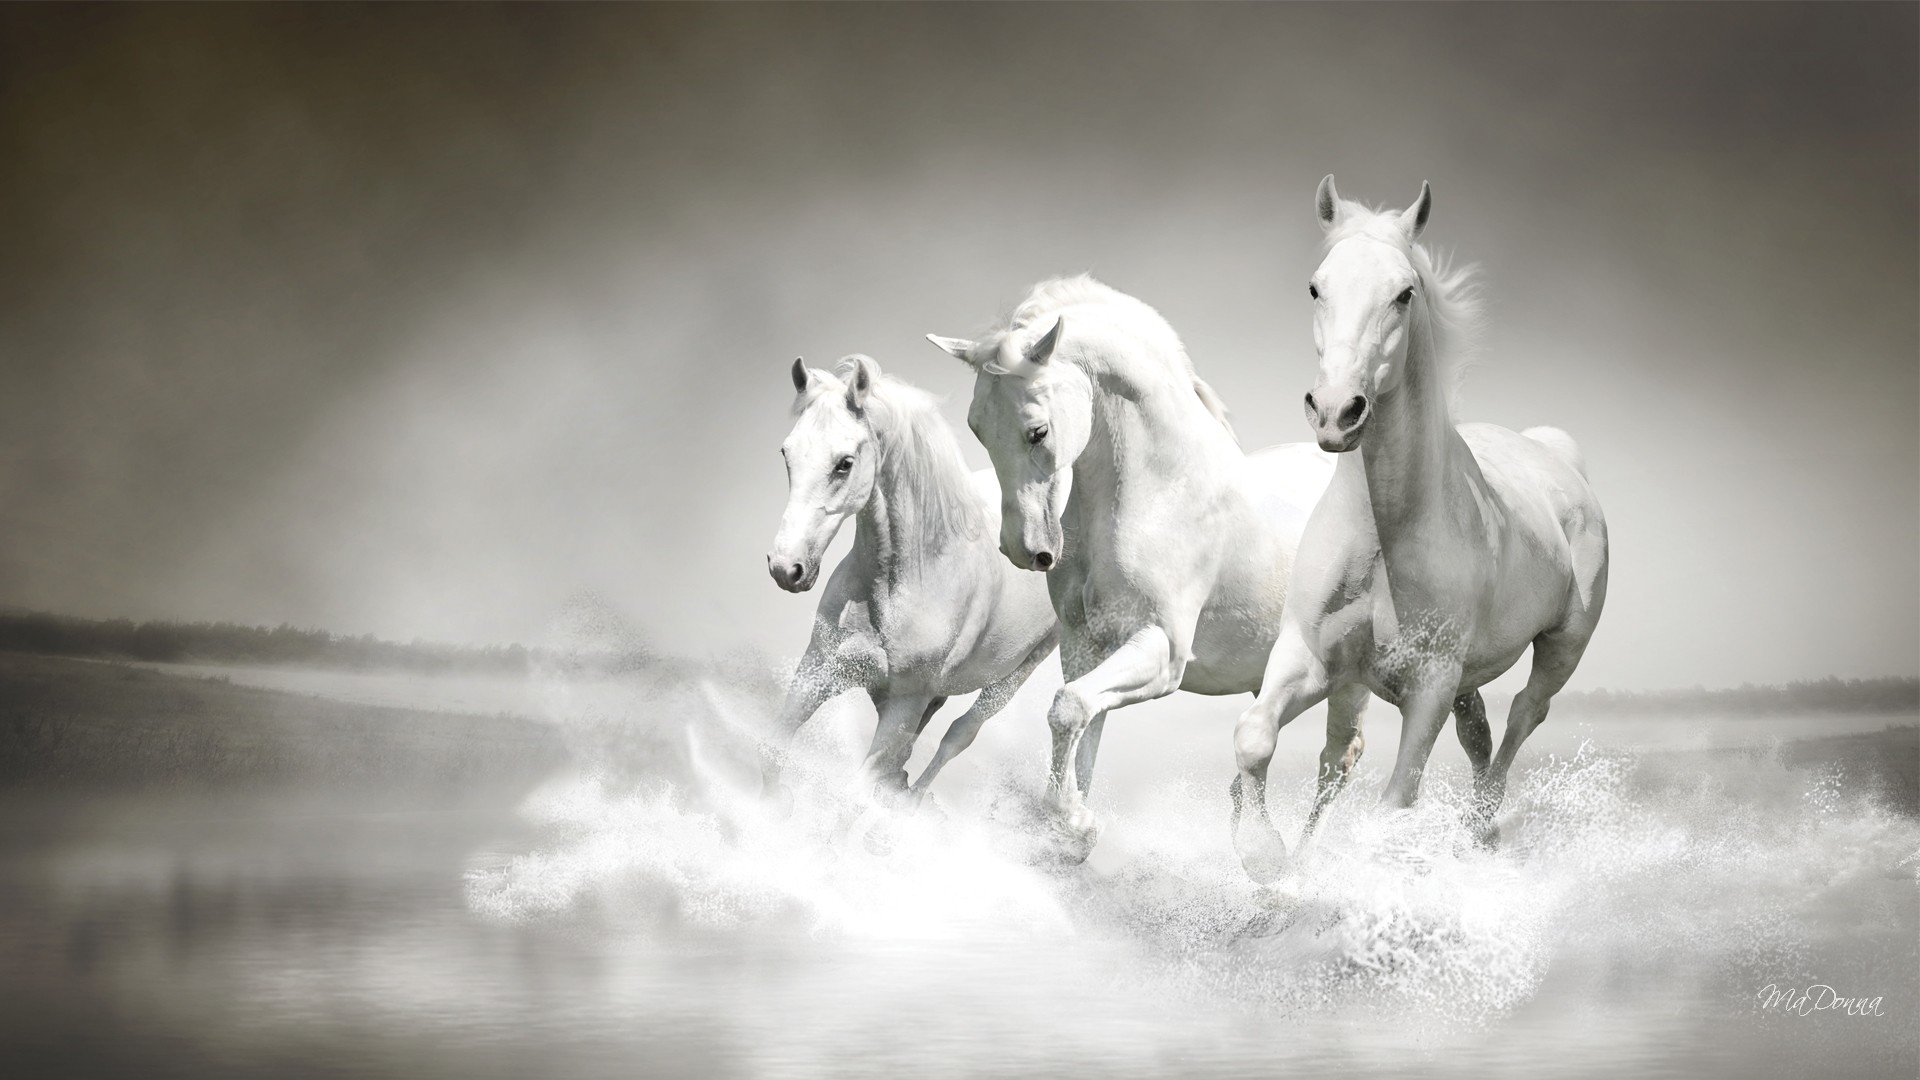 White horse wallpapers pictures images white horse full hd wallpaper 1920x1080 voltagebd Image collections